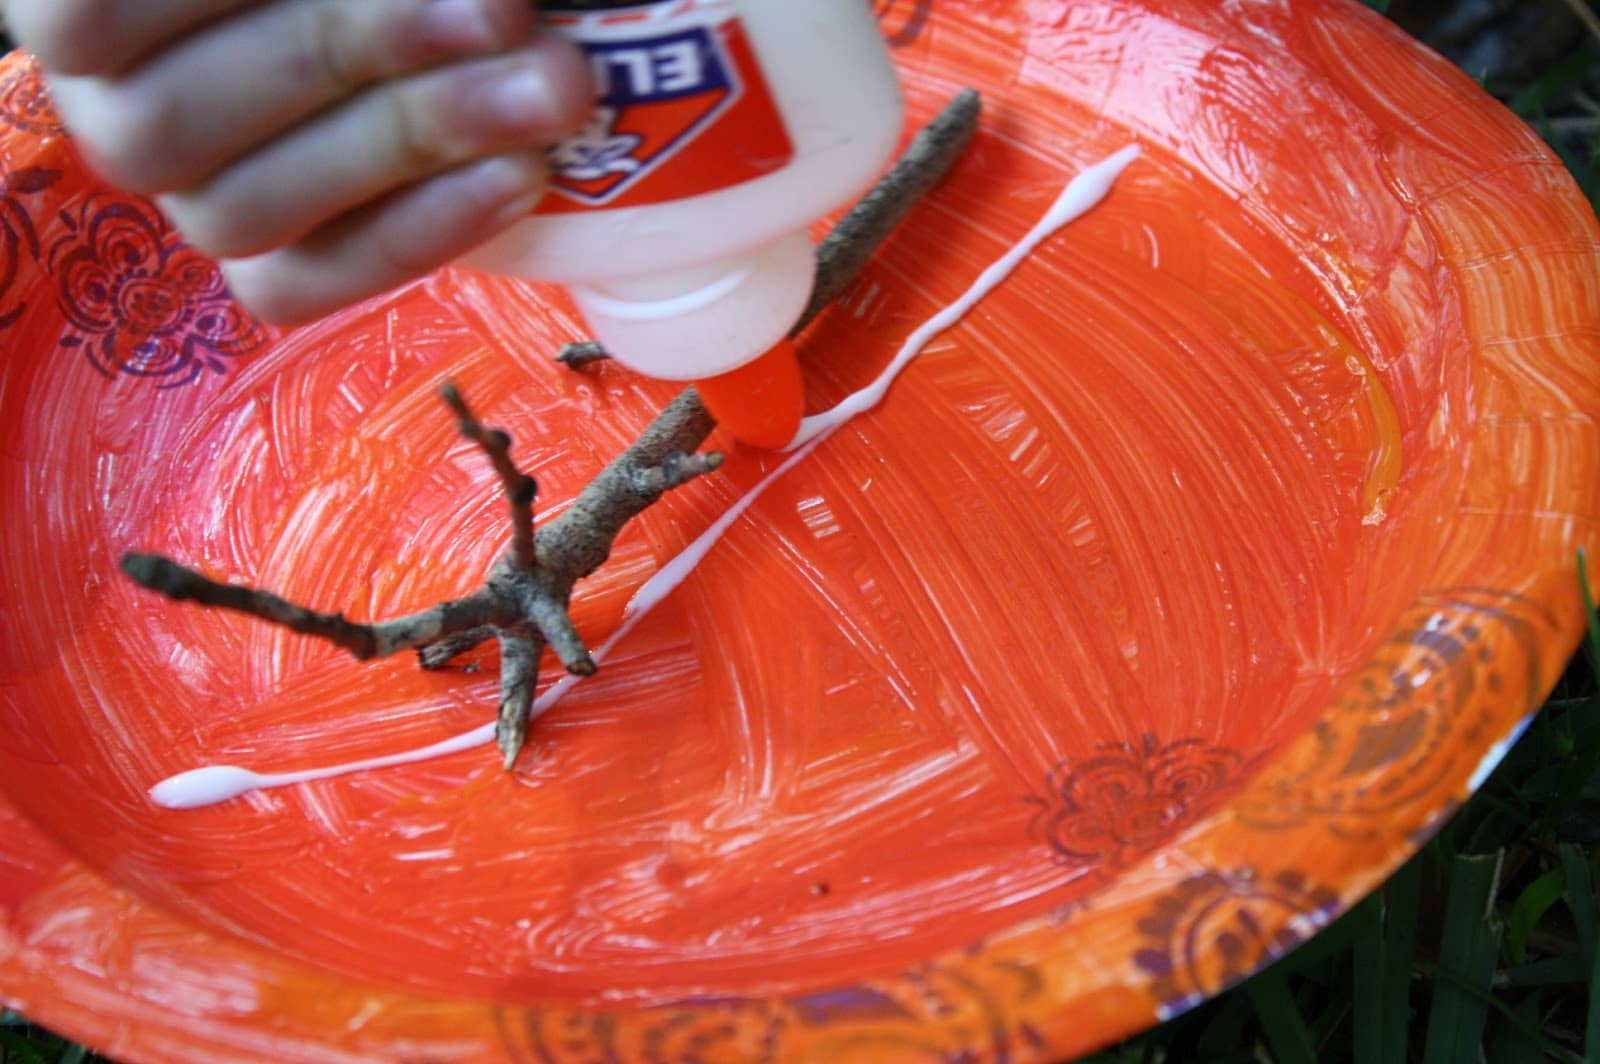 Glue a small branch or twig on to the paper plate to create the main tree trunk.